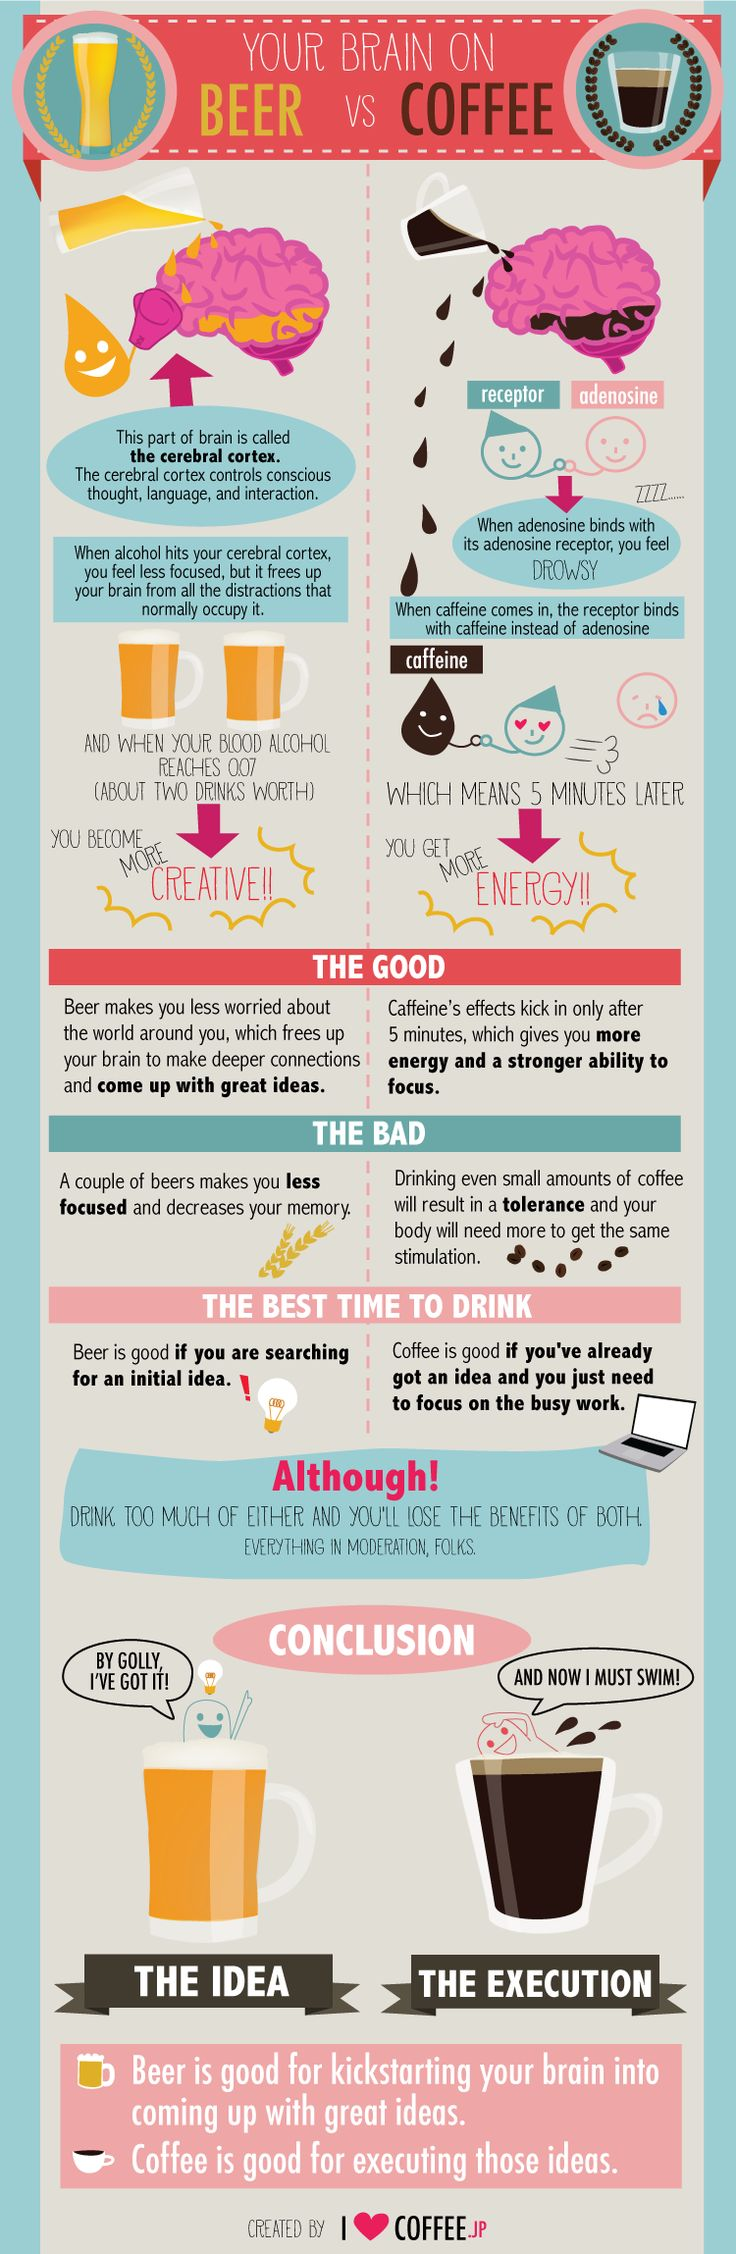 How alcohol and caffeine affect the brain in different ways #infographic